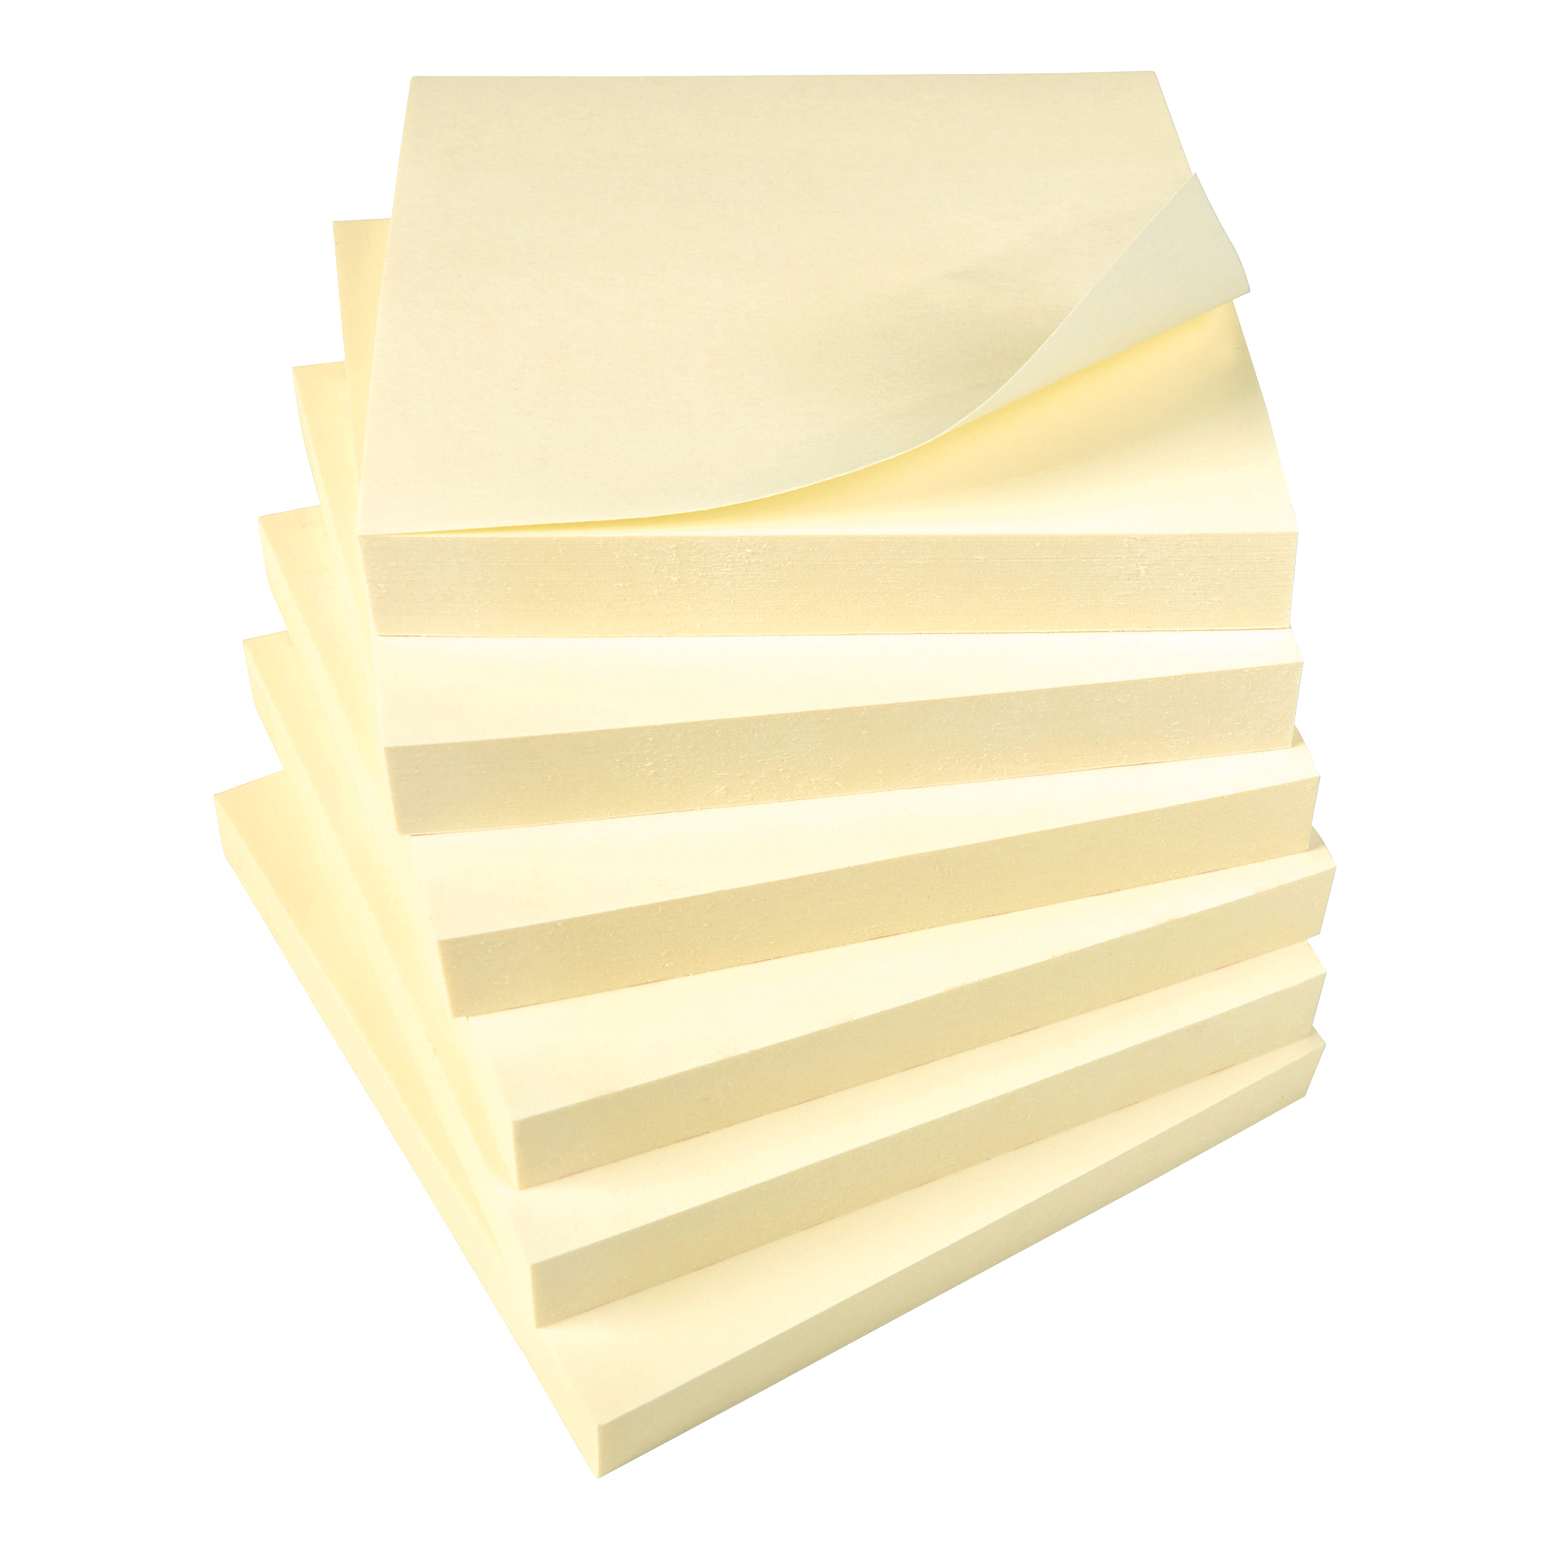 5 Star Office Re-Move Notes Repositionable Pad of 100 Sheets 76x76mm Yellow